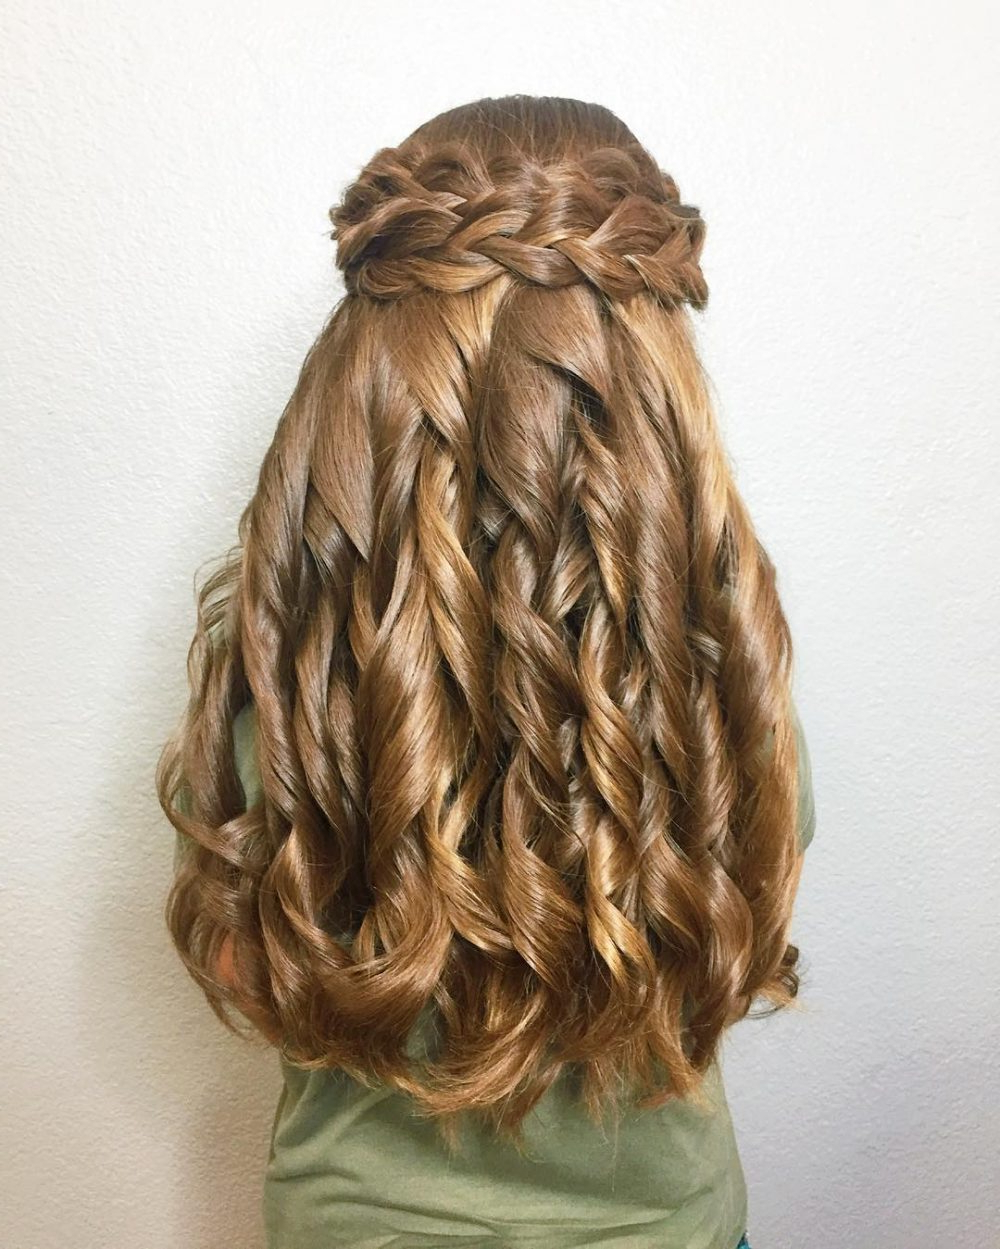 Well Known Romantic Prom Updos With Braids For 23 Cute Prom Hairstyles For 2019 – Updos, Braids, Half Ups & Down Dos (View 19 of 20)